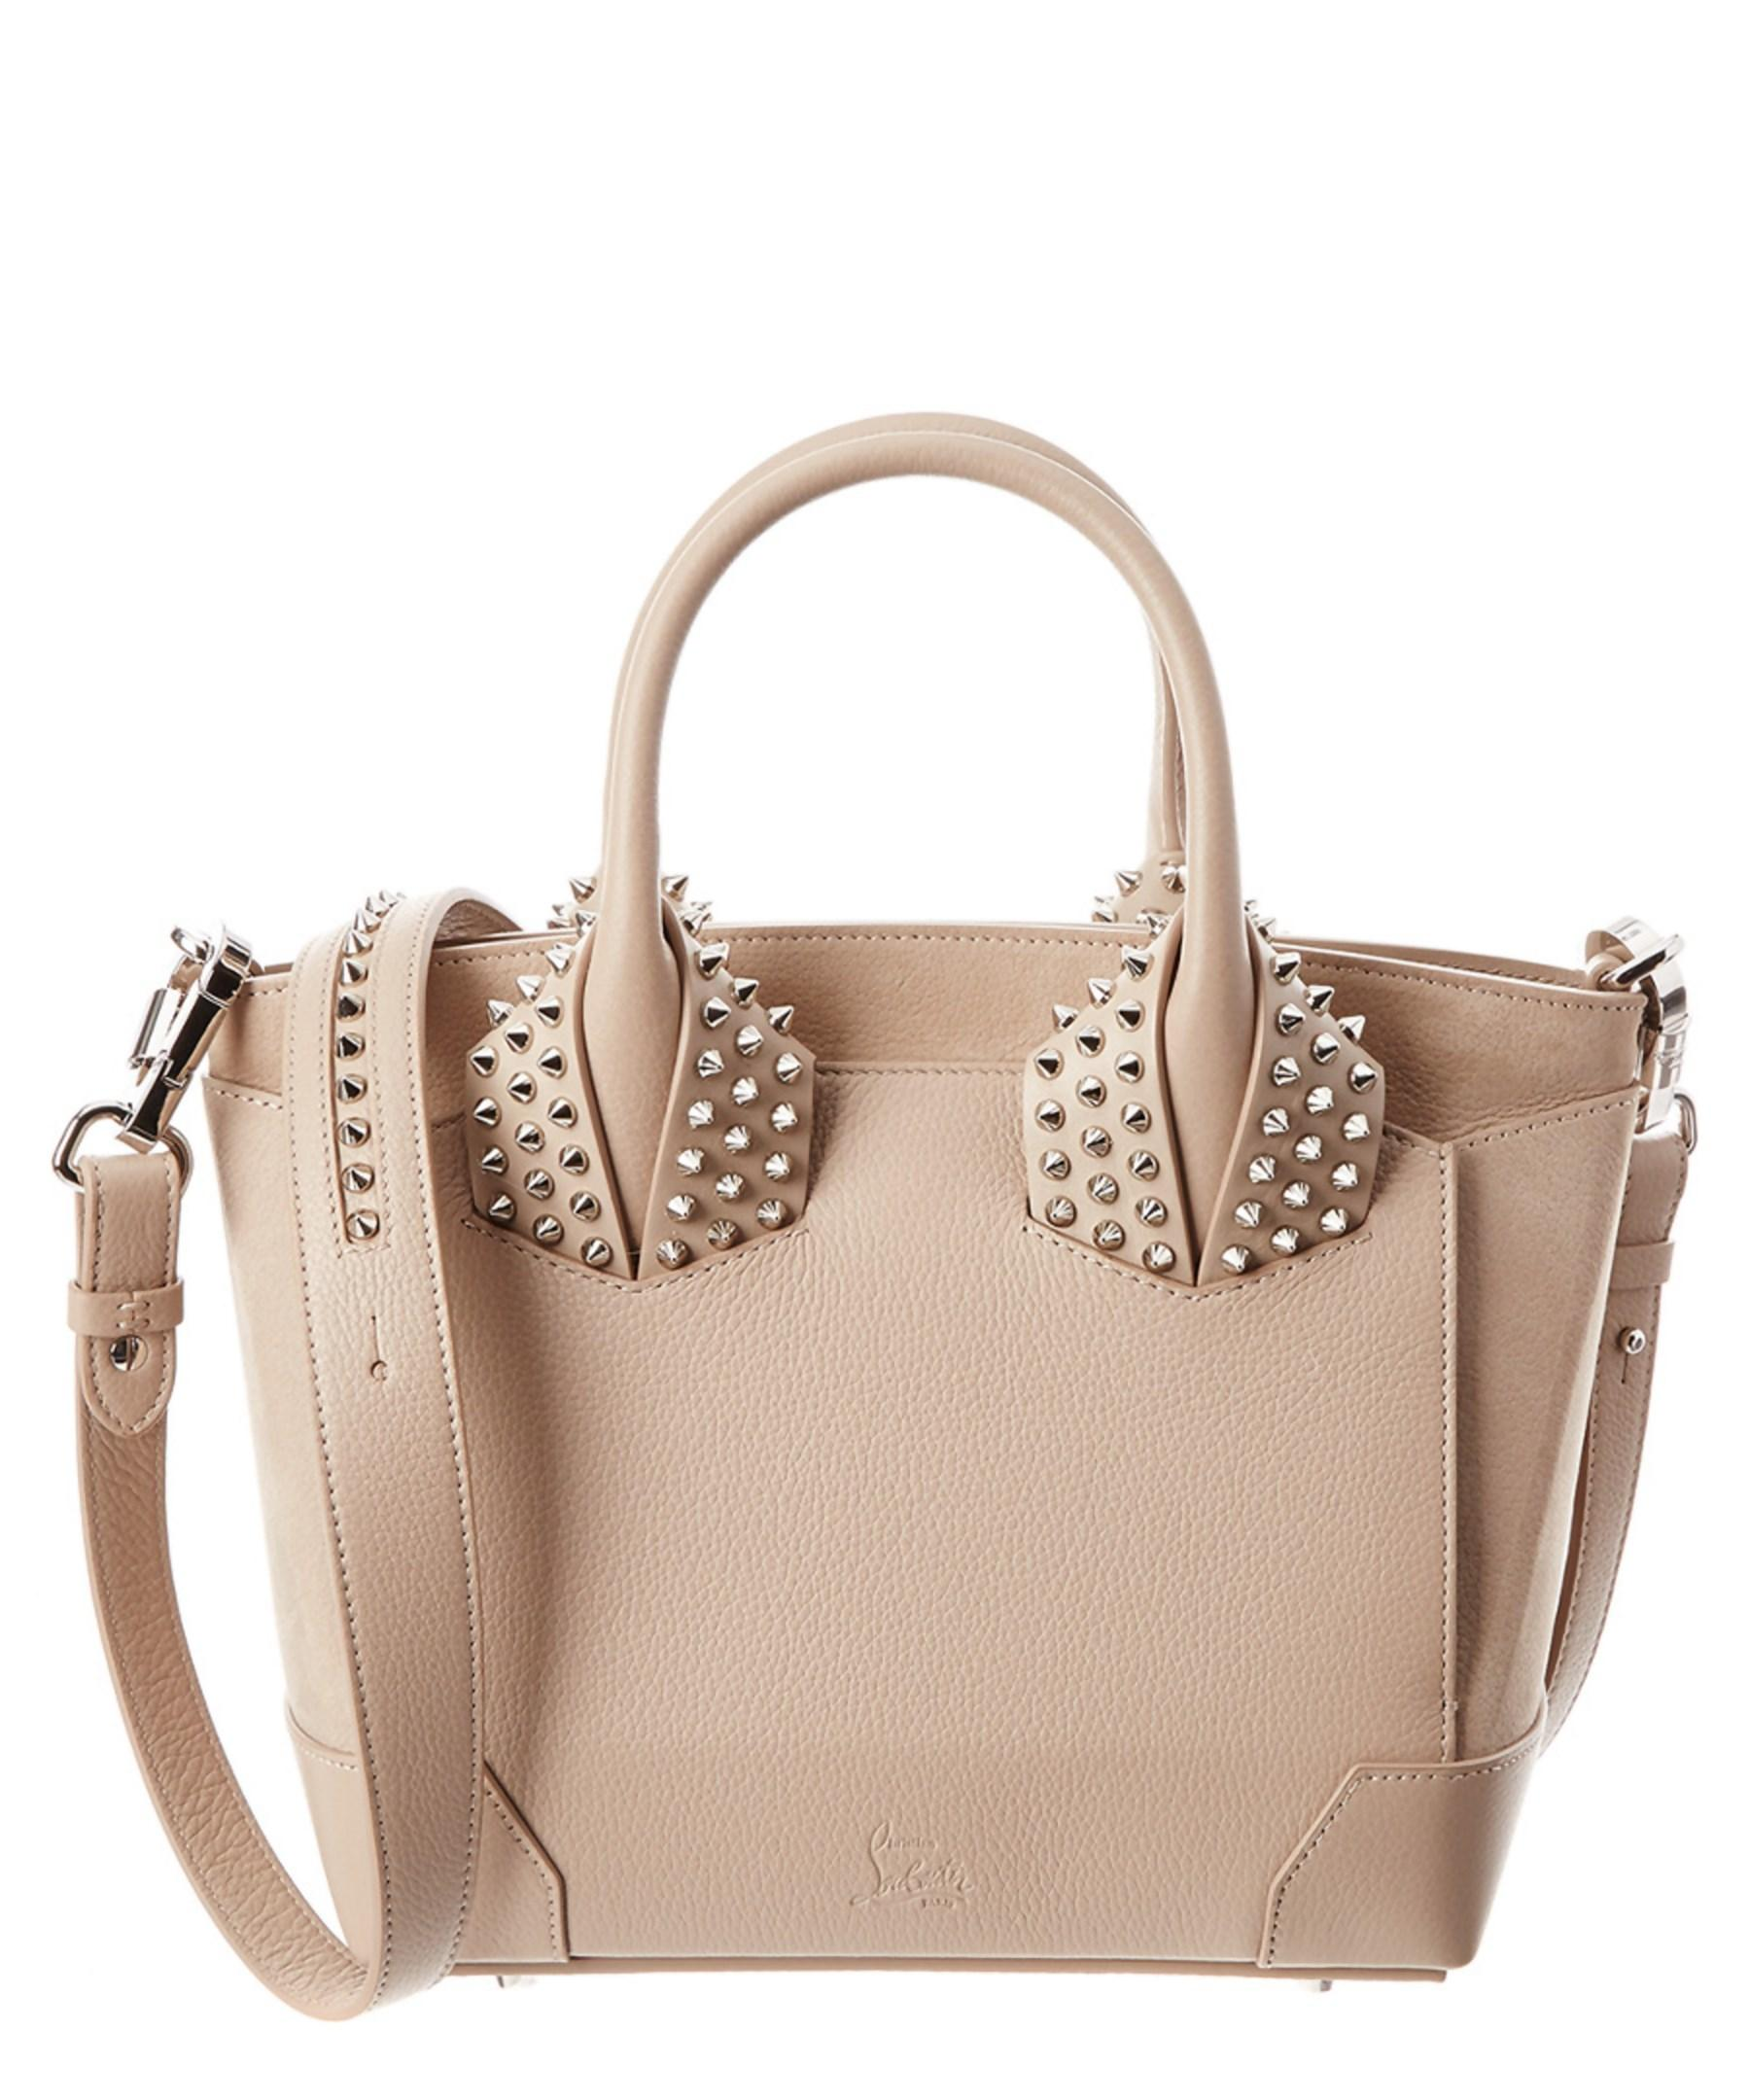 16cc27d36a5 Lyst - Christian Louboutin Eloise Small Leather Two Handle Bag